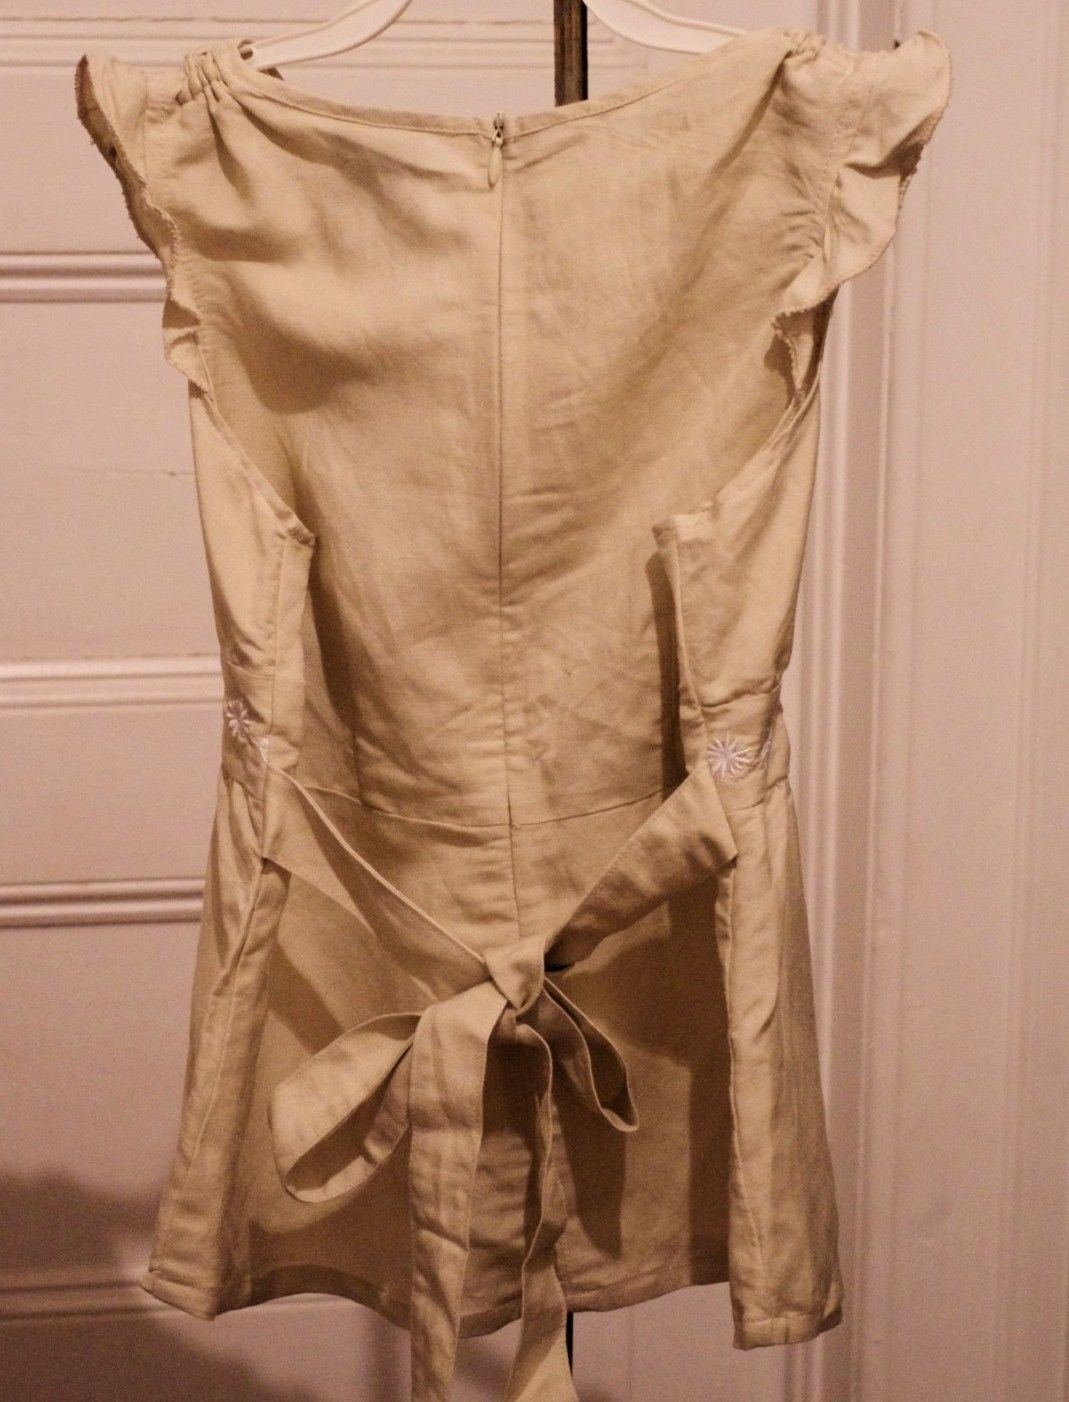 New Girls M 10/12 Top Tan Linen Blend Embroidered Tie Back Babydoll NWT image 3